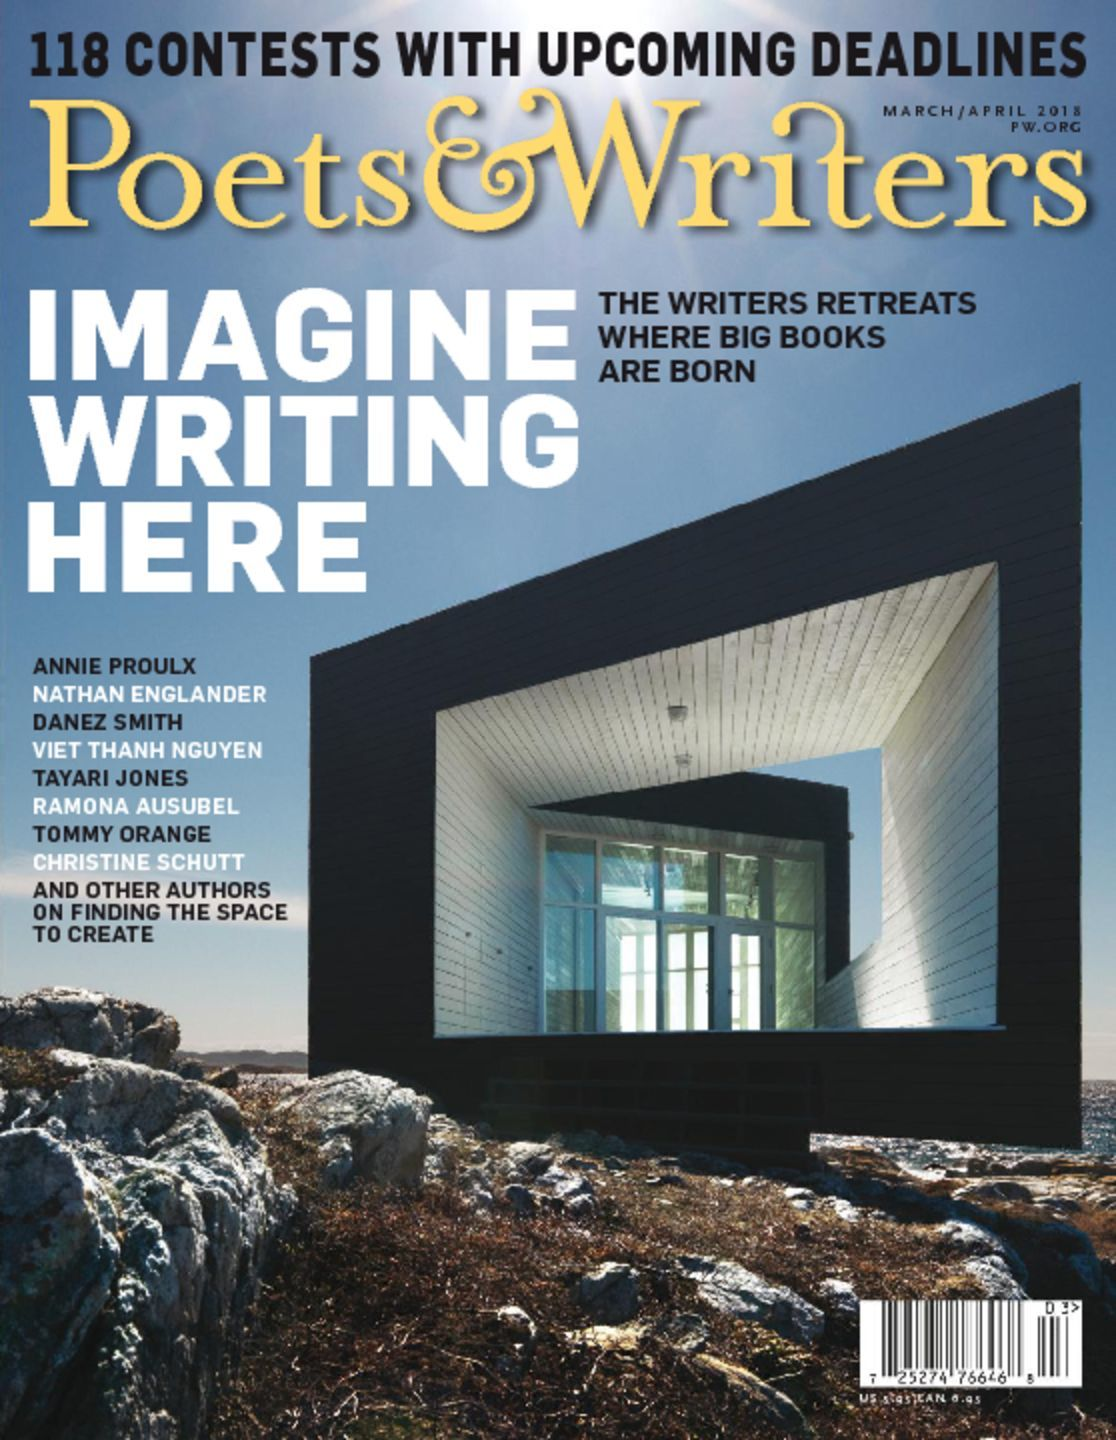 Poets Writers Magazine Subscription